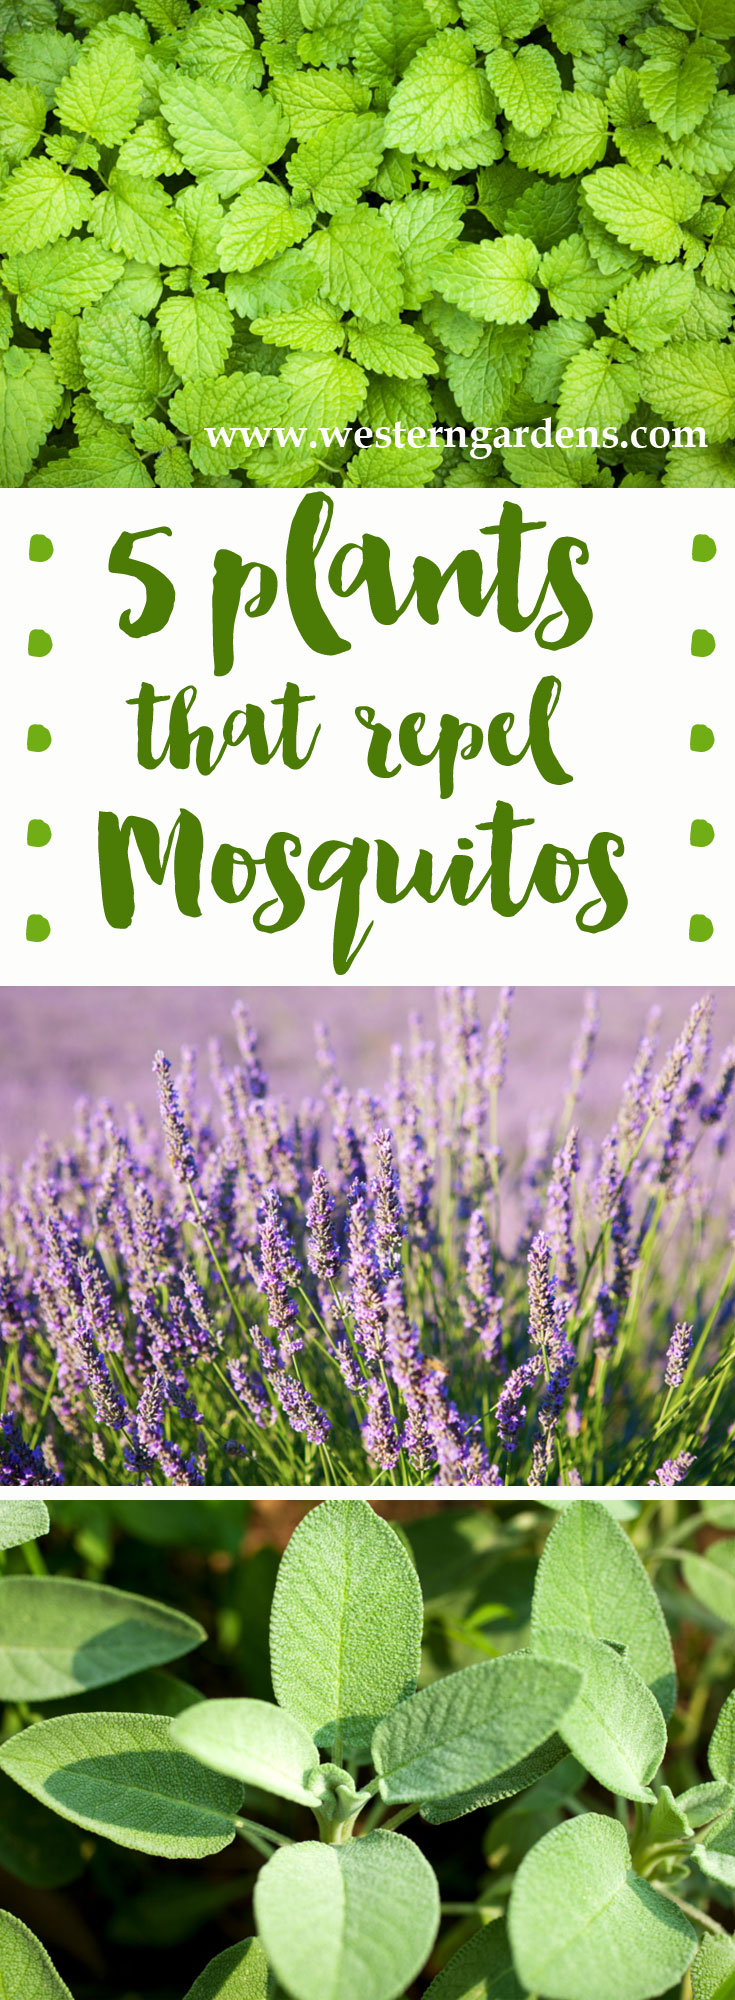 5 Plants that Repel Mosquitoes - www.westerngardens.com